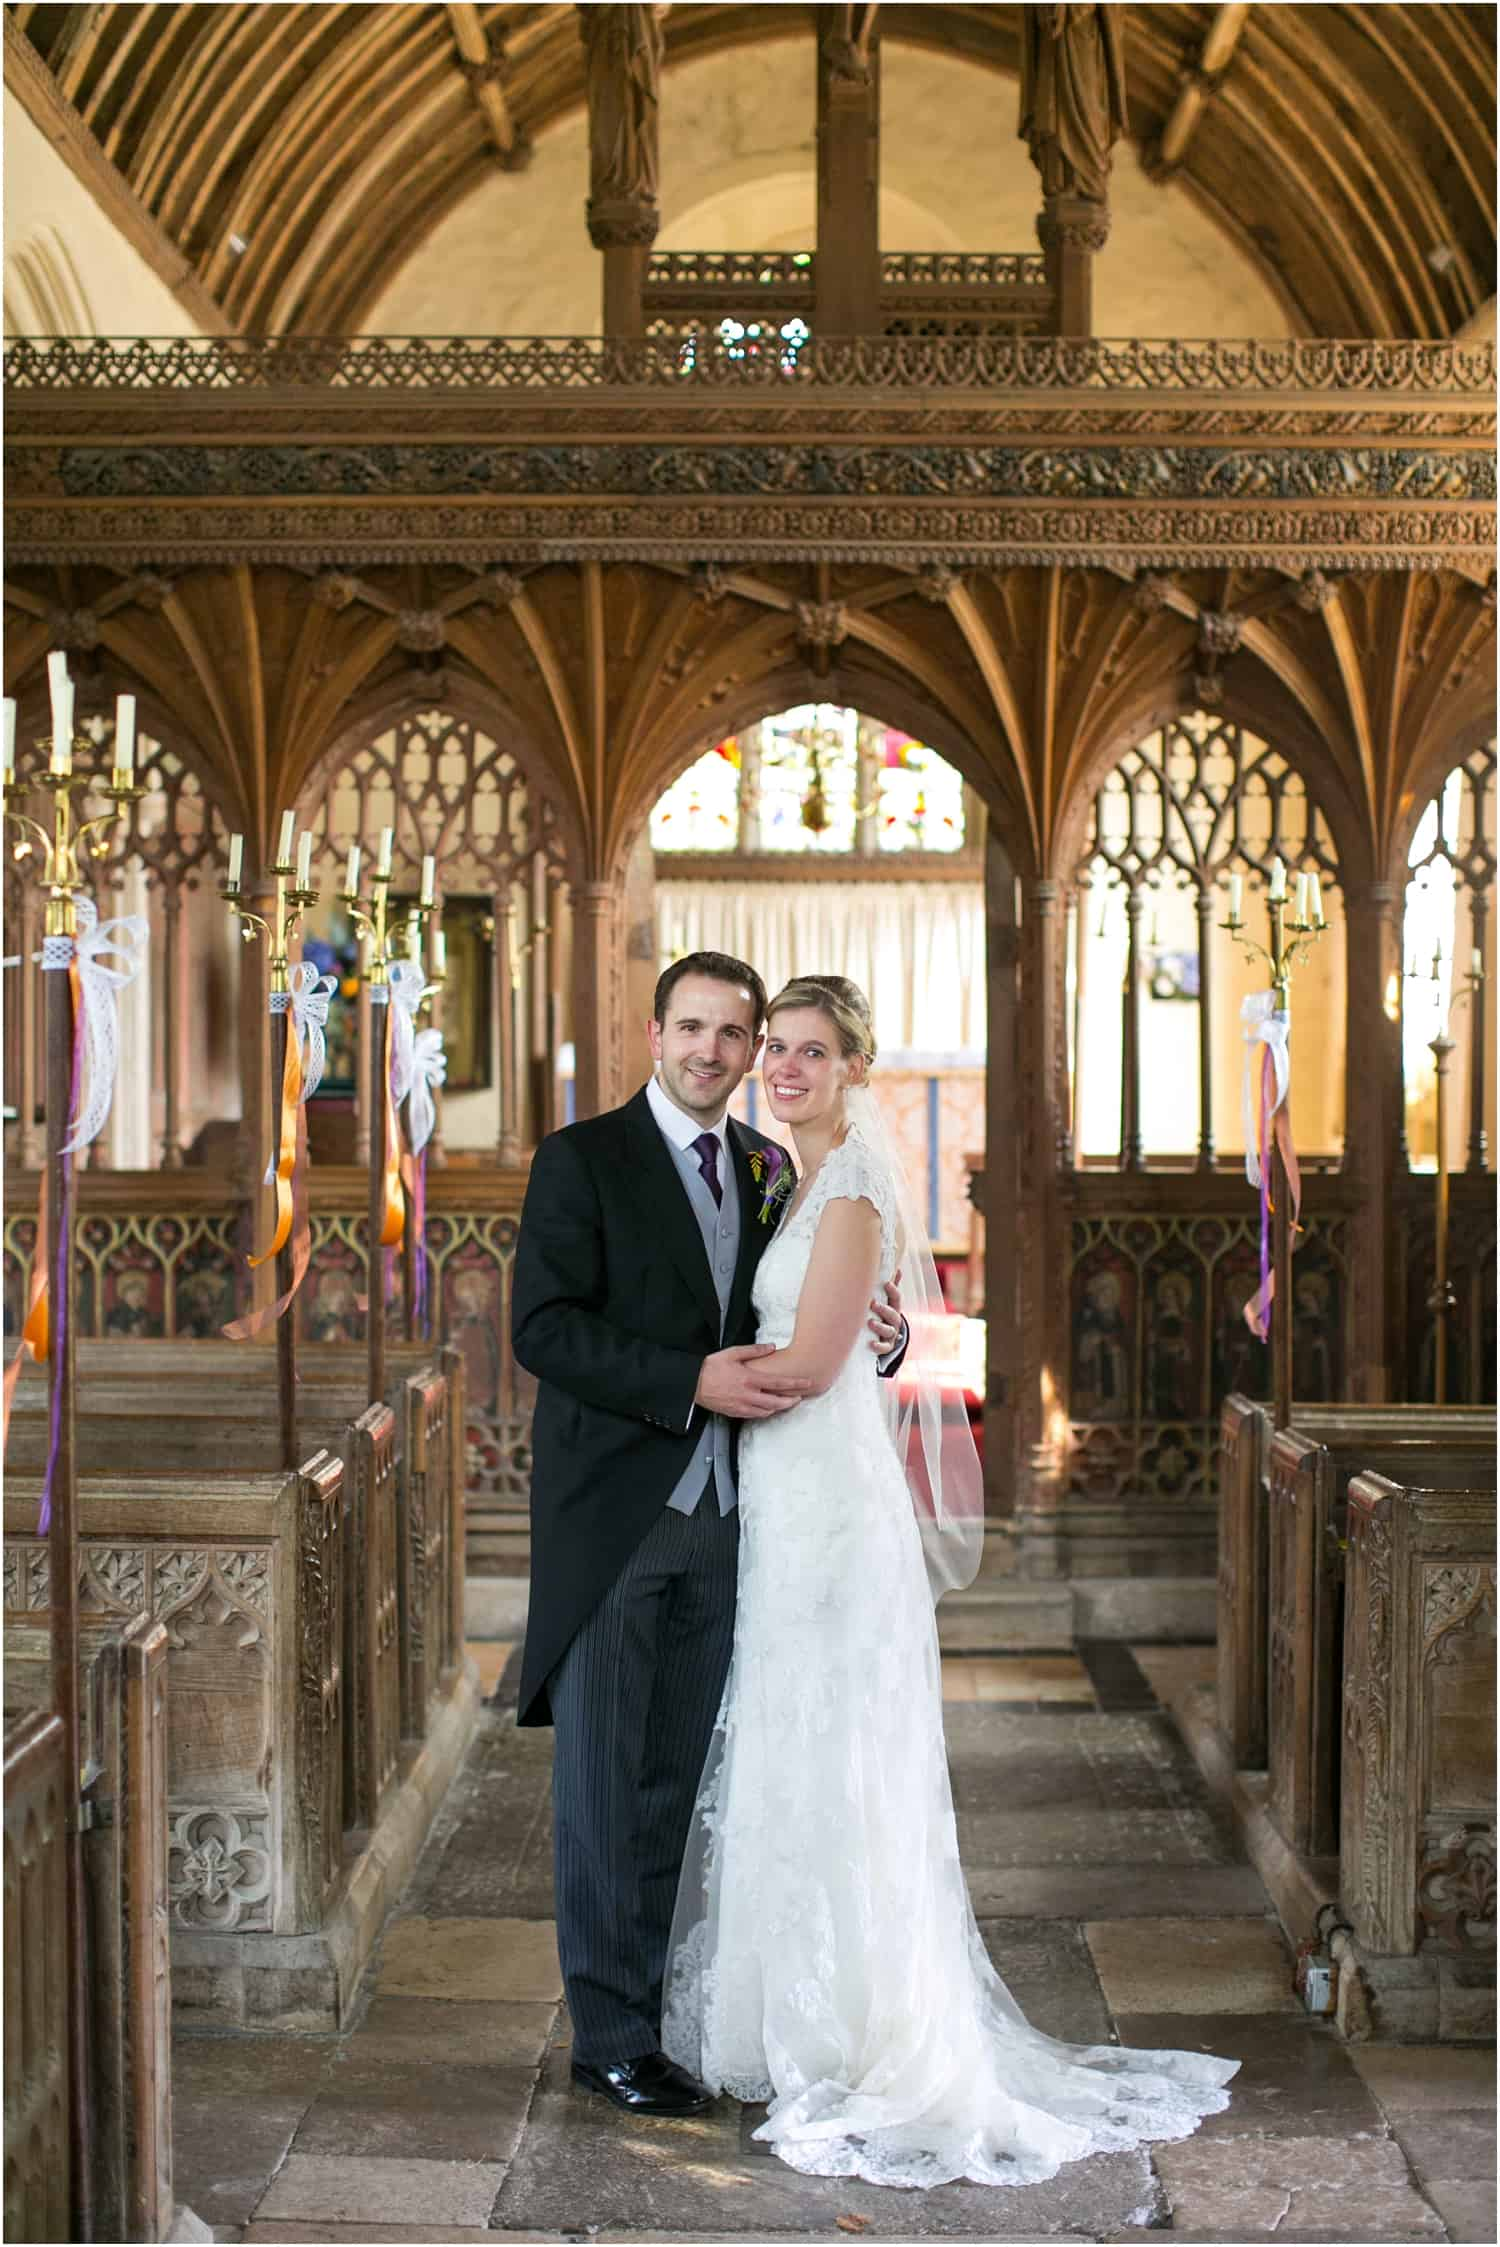 The Great Barn Wedding, lace gown, church wedding, Devon wedding